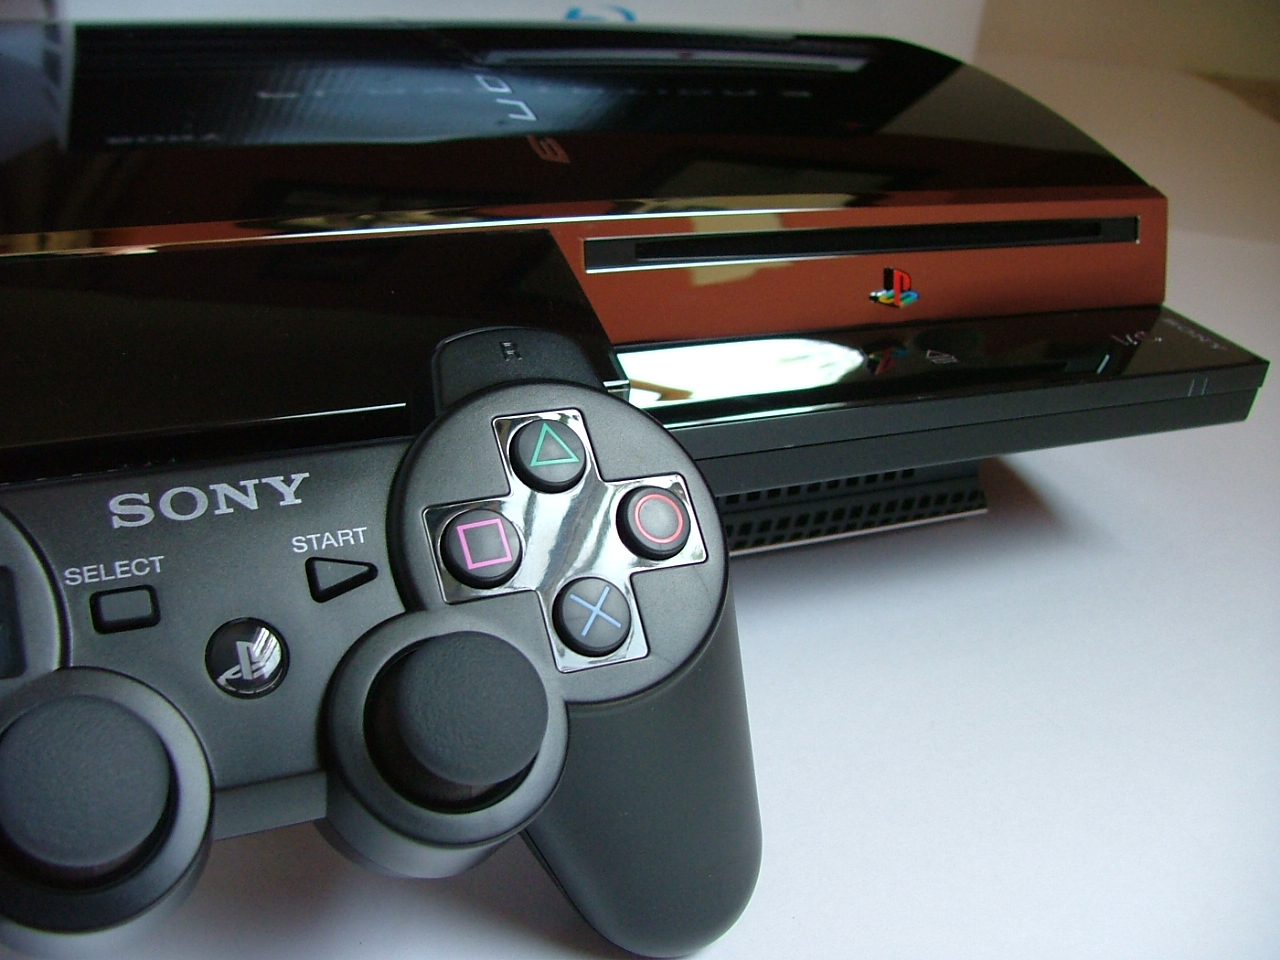 File:Playstation 3 and controller.jpg